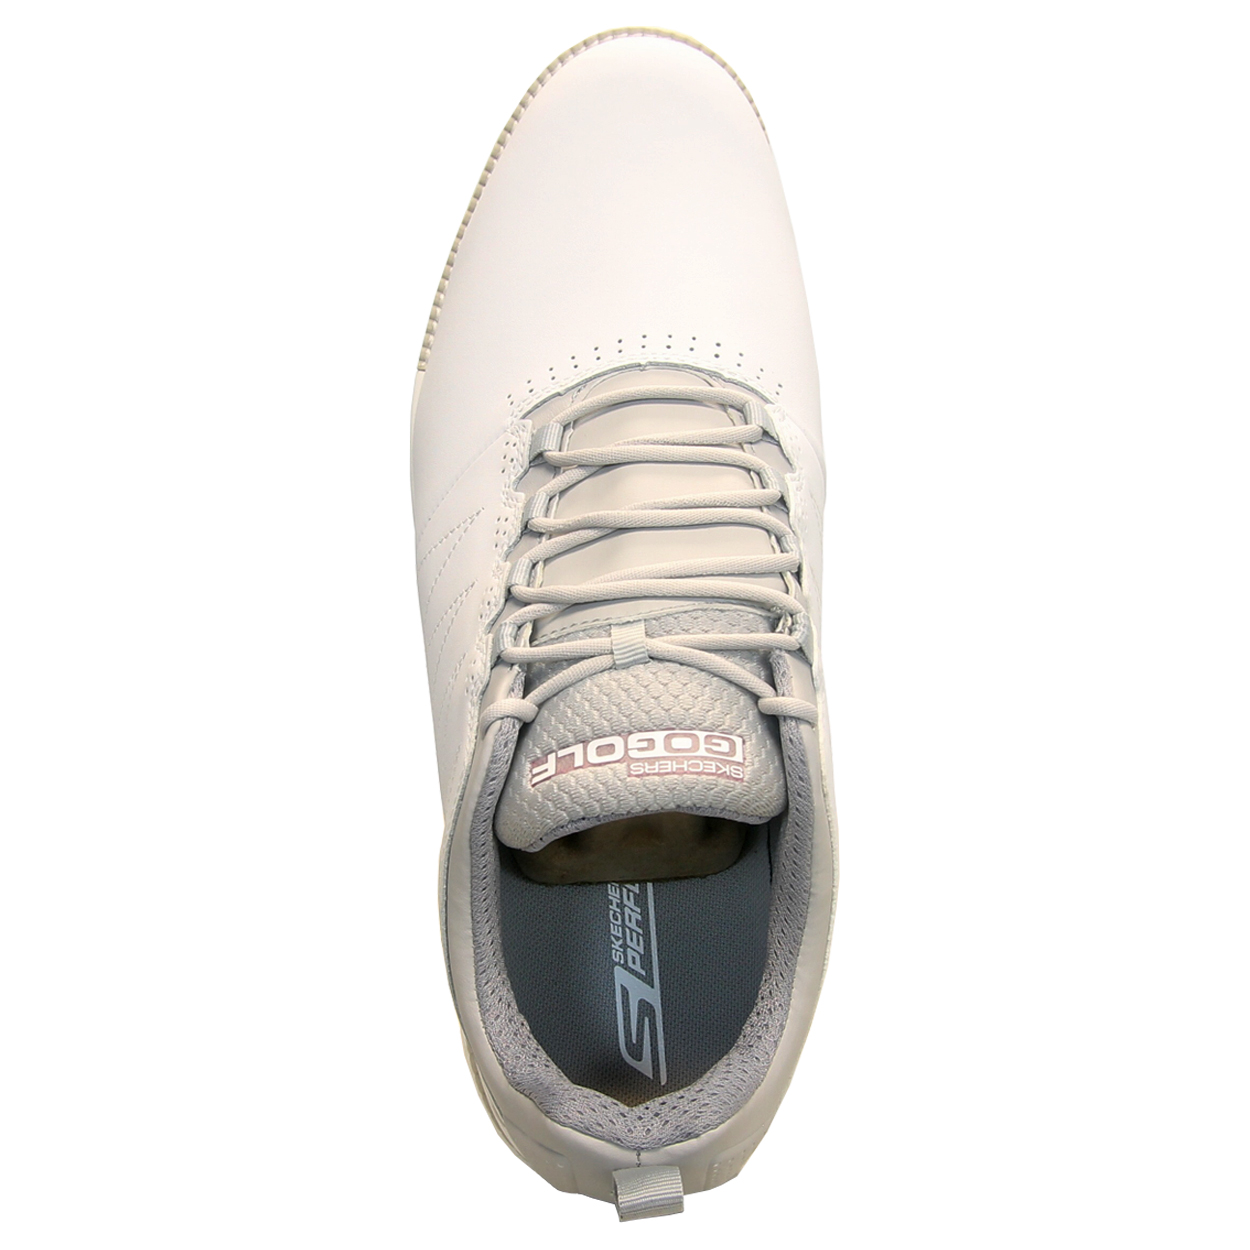 Skechers-Men-039-s-GOgolf-Elite-3-Spikeless-Golf-Shoe-New thumbnail 8